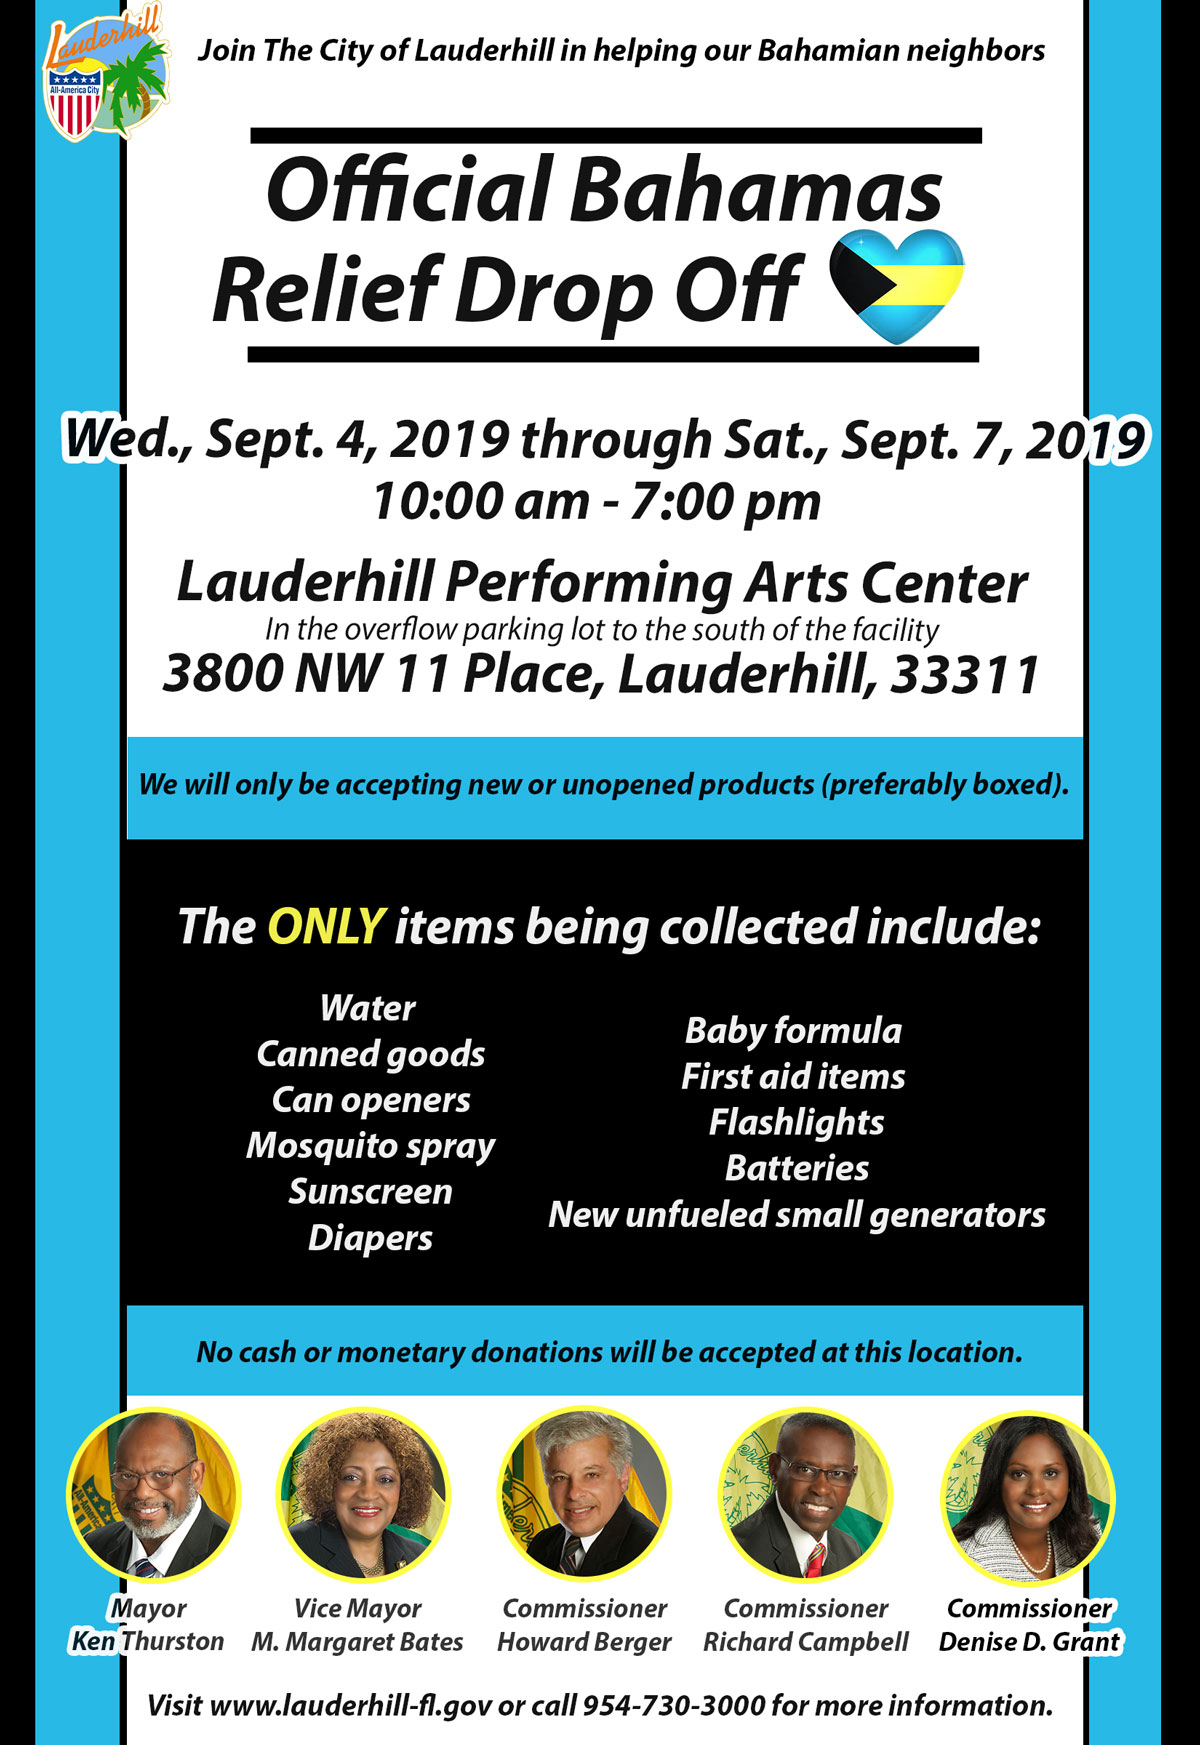 Lauderhill Opens an Official Bahamas Relief Drop Off Location for Donations